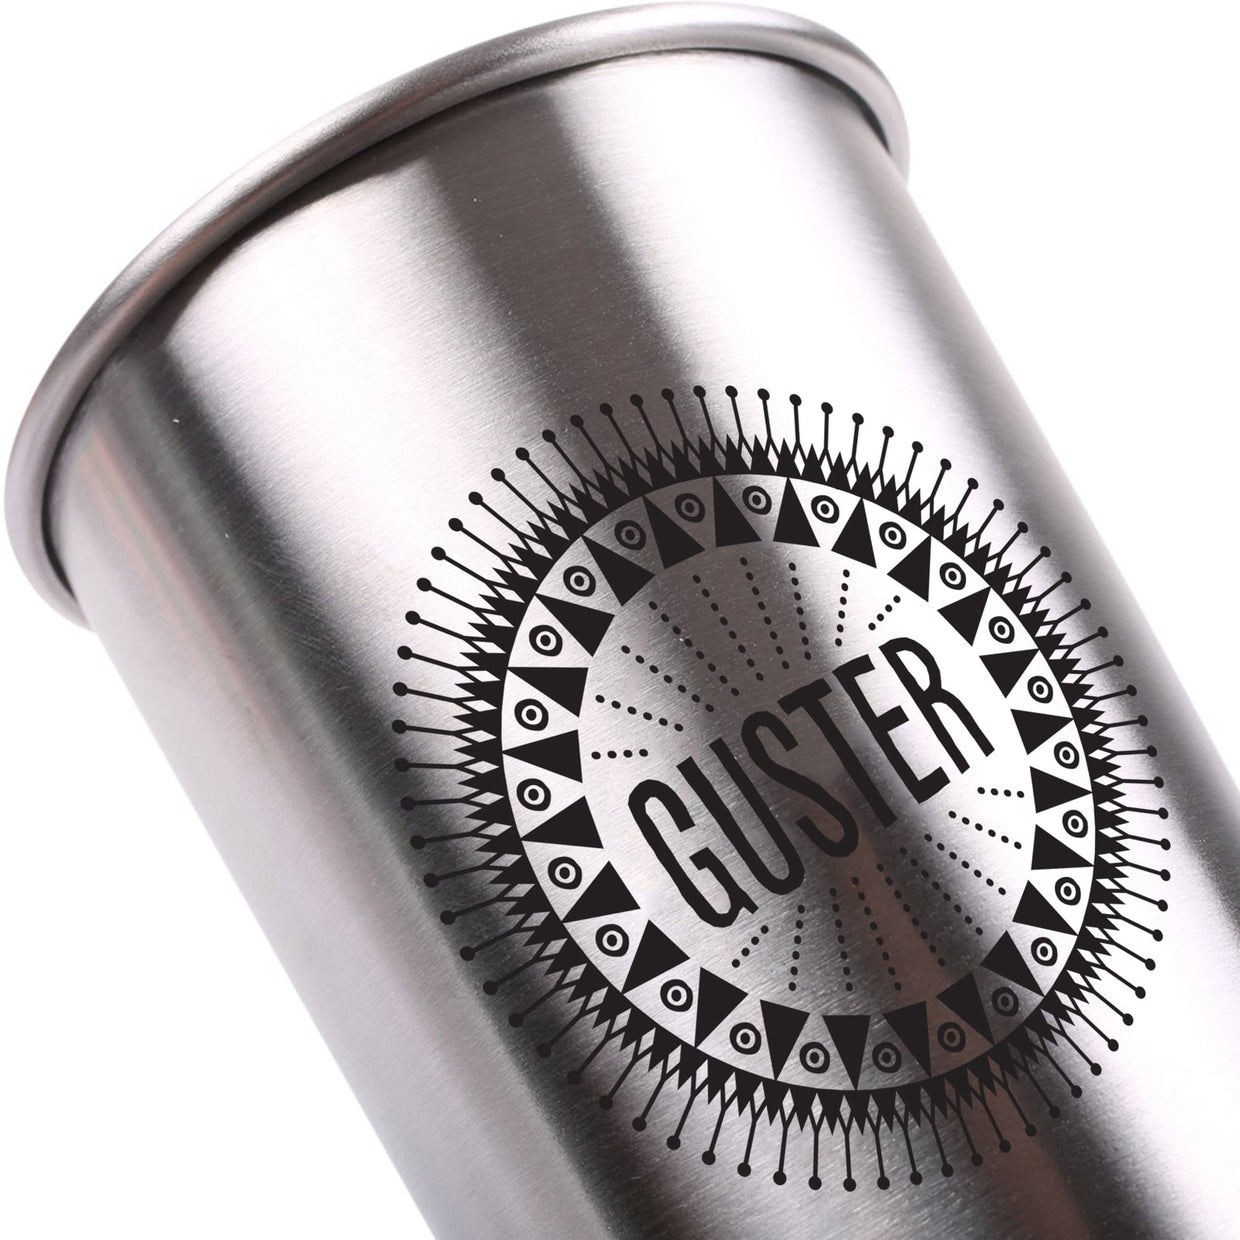 'Guster' Stainless Steel Pint Glass